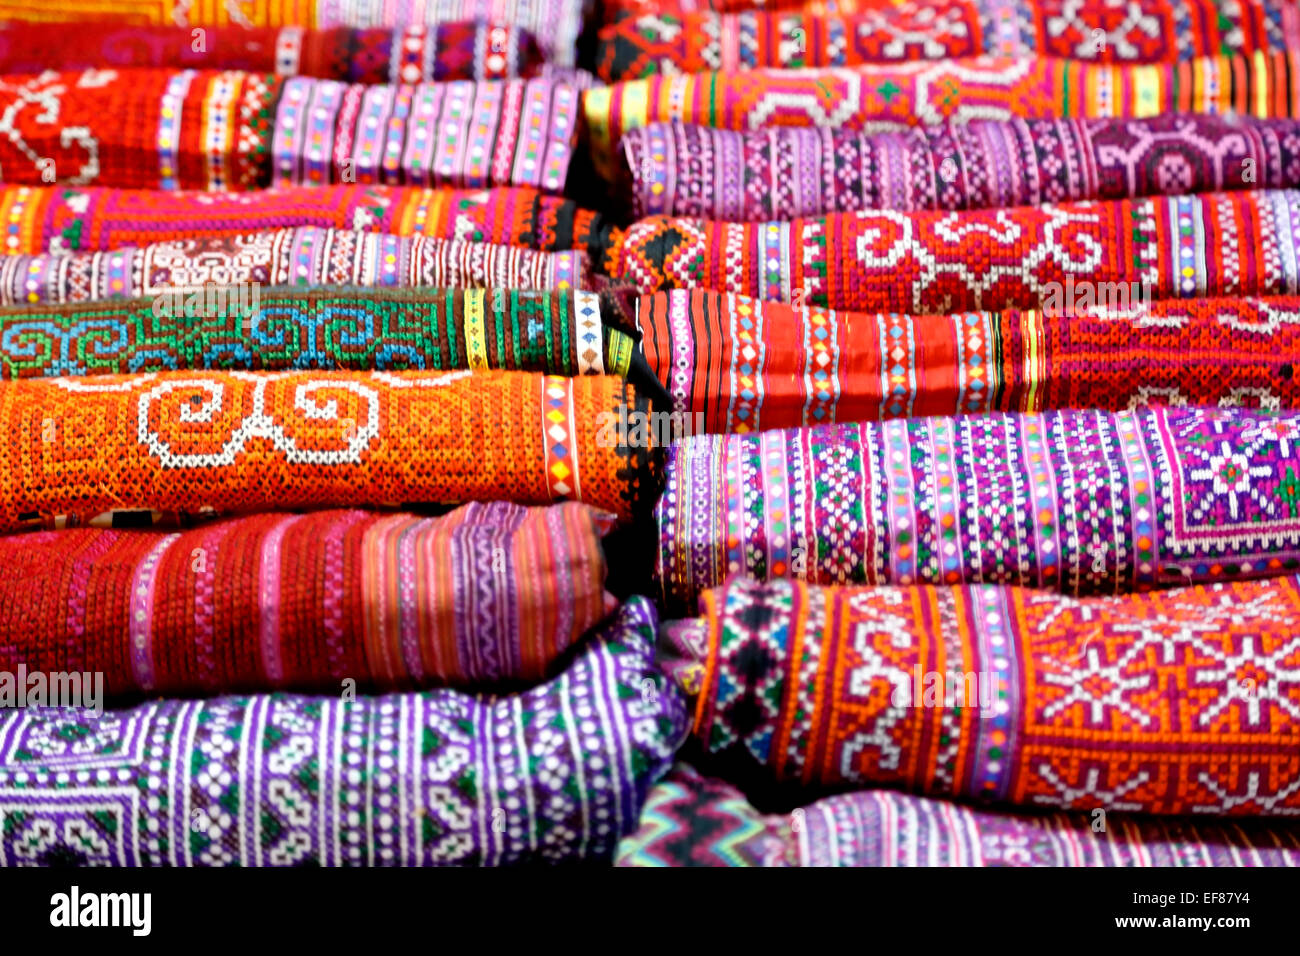 Traditional Thai bedspreads, Sunday Market, Chiang Mai, Thailand - Stock Image